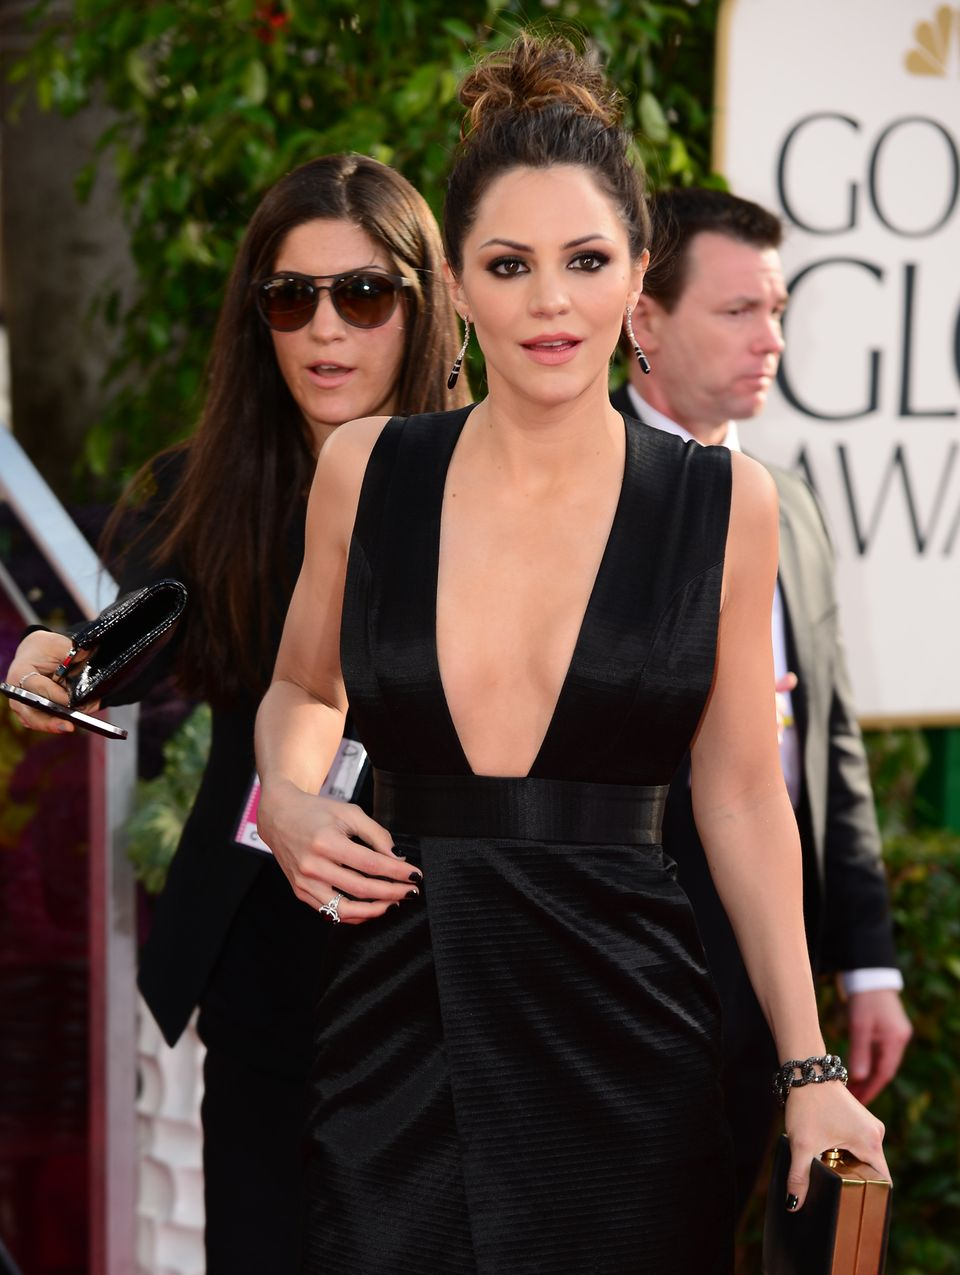 Actress Katharine McPhee arrives for the Golden Globe Awards in Beverly Hills on January 13, 2013. AFP PHOTO / Frederic J. BR